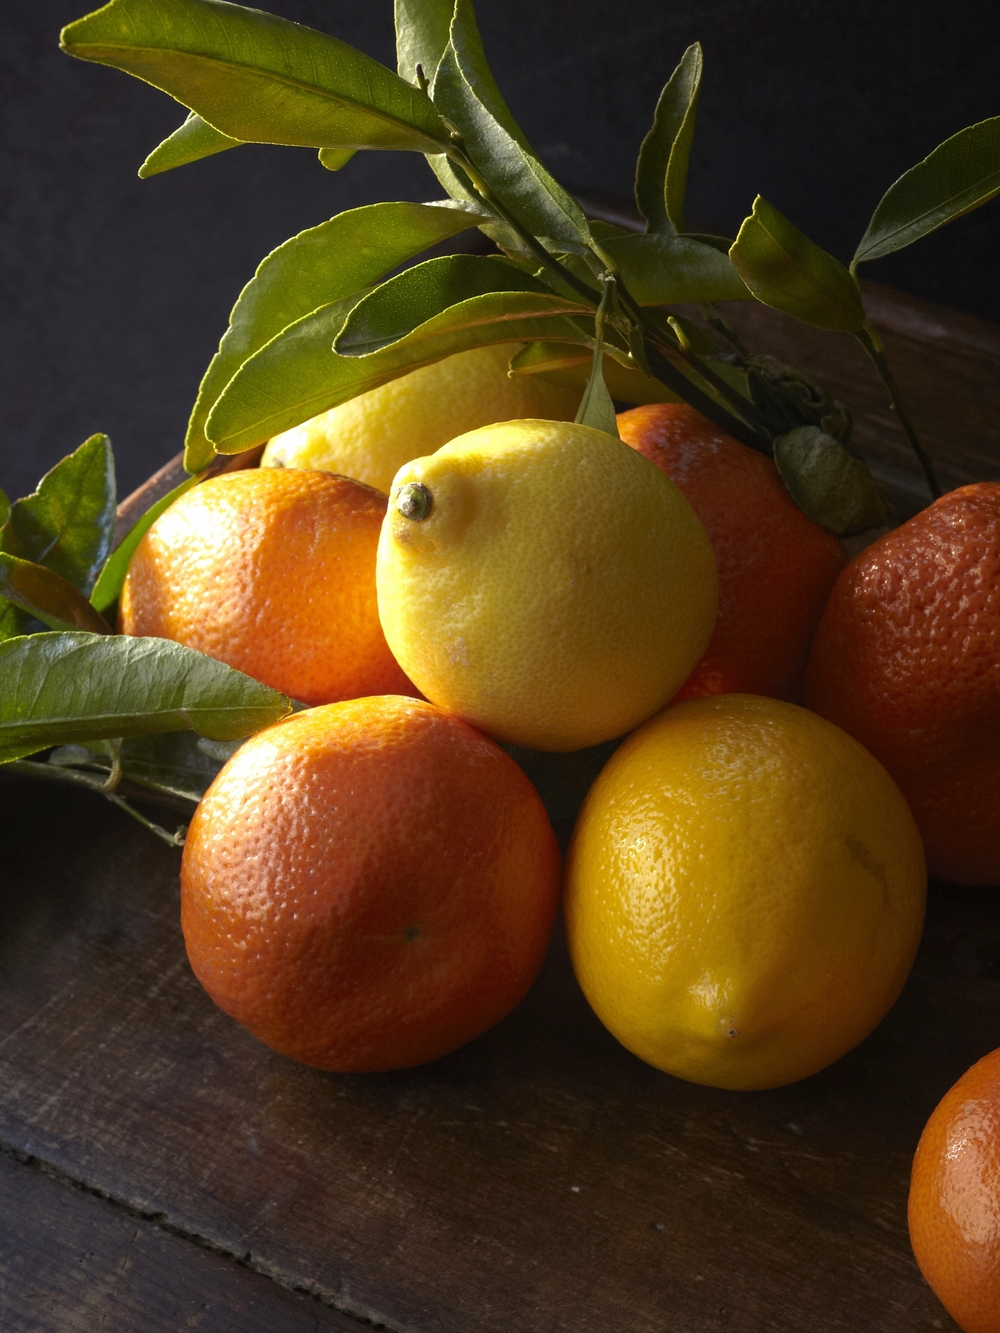 Fresh citrus at Via Carota, where cherished downtown chefs Jody Williams and Rita Sodi cook deeply appealing Italian food, honoring their local markets and farms from one season to the next.